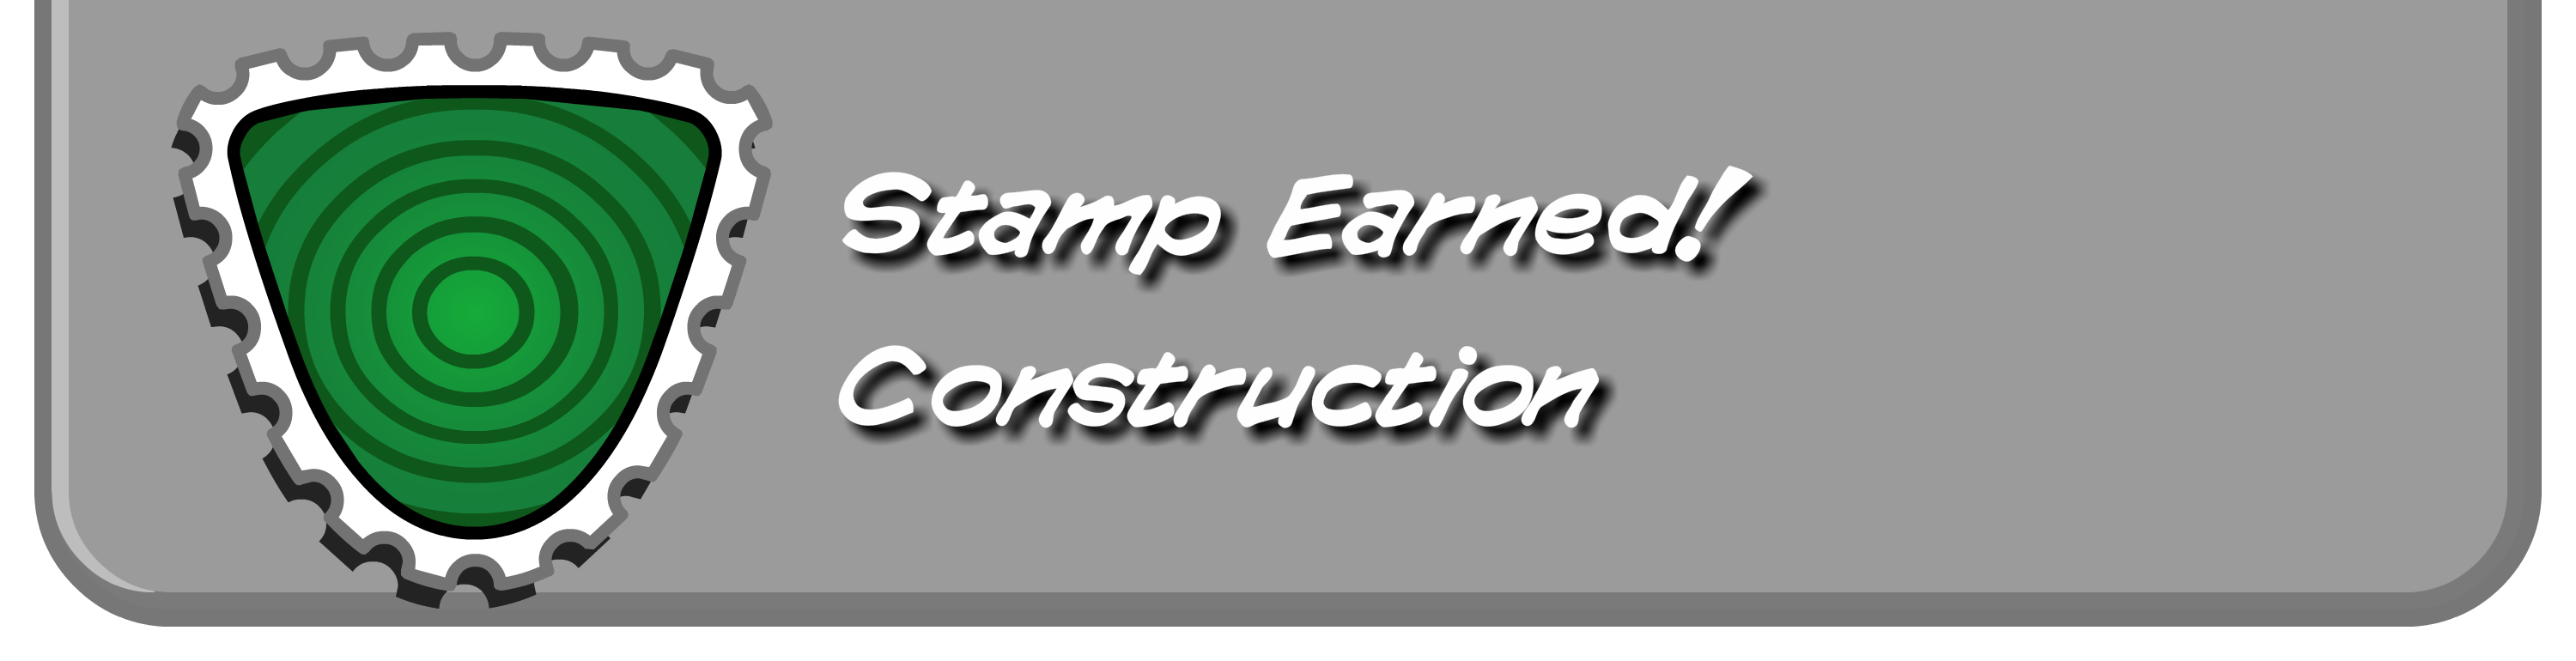 Construction Stamp